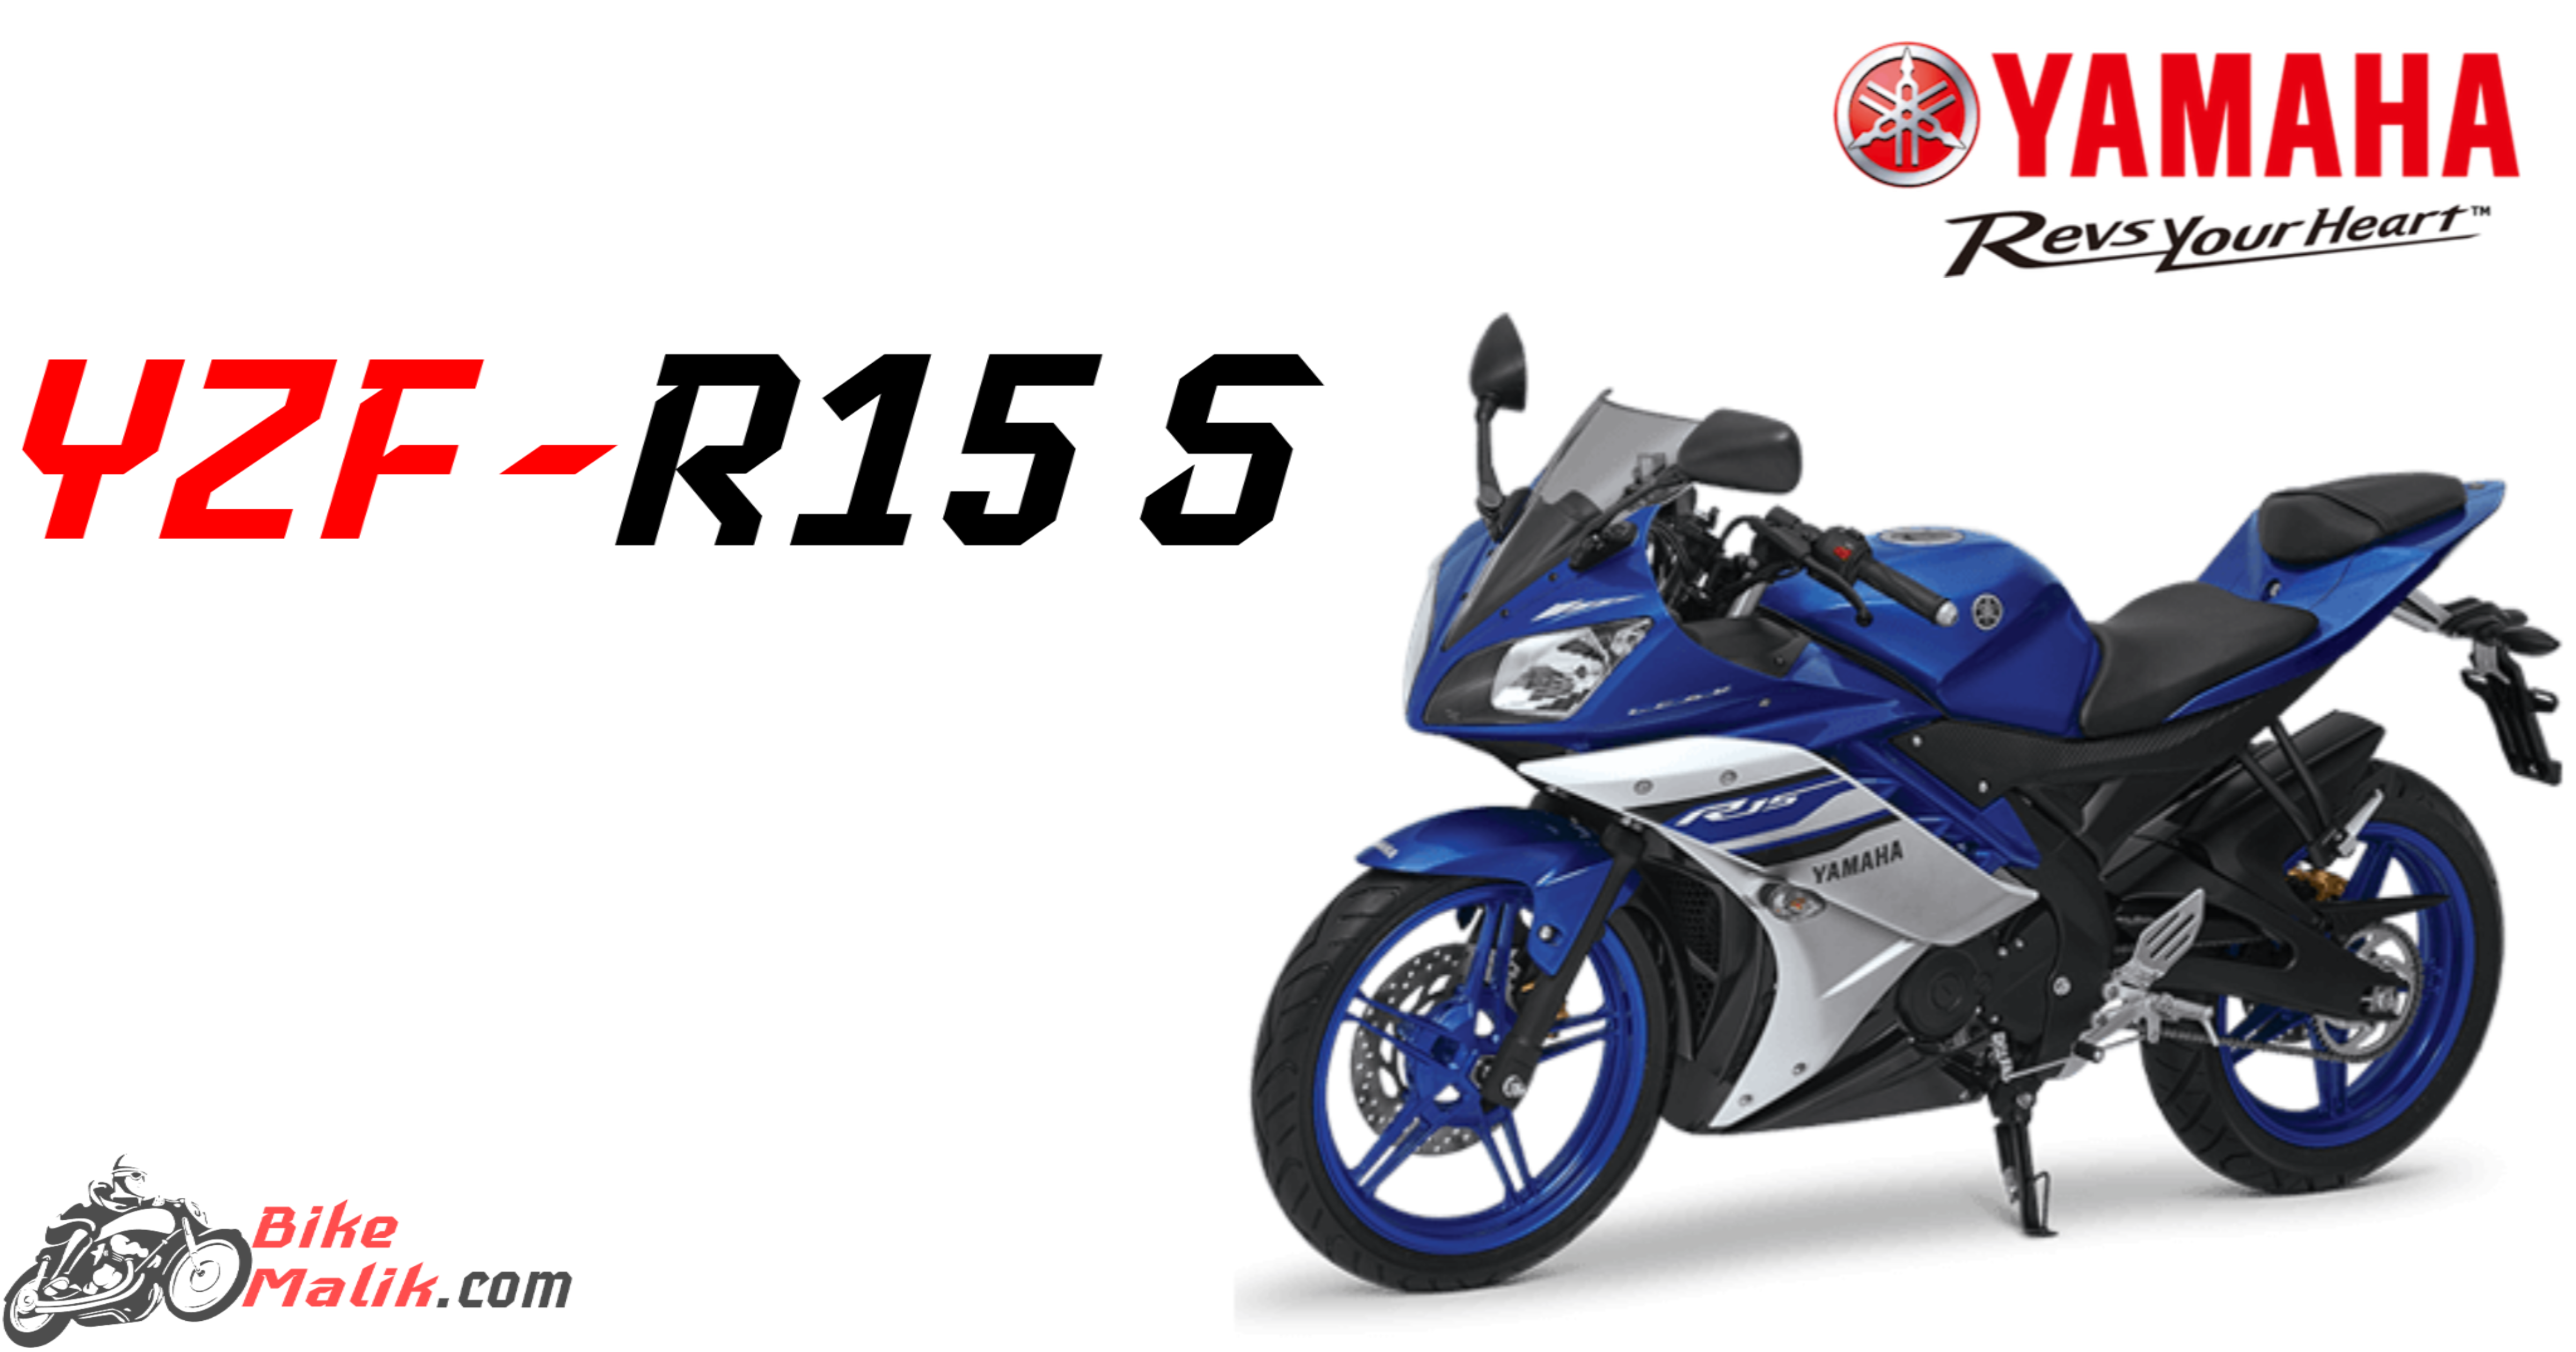 Yamaha YZF R15S Price, Mileage, Performance, Features, Specs, Colors, Images & 360 View